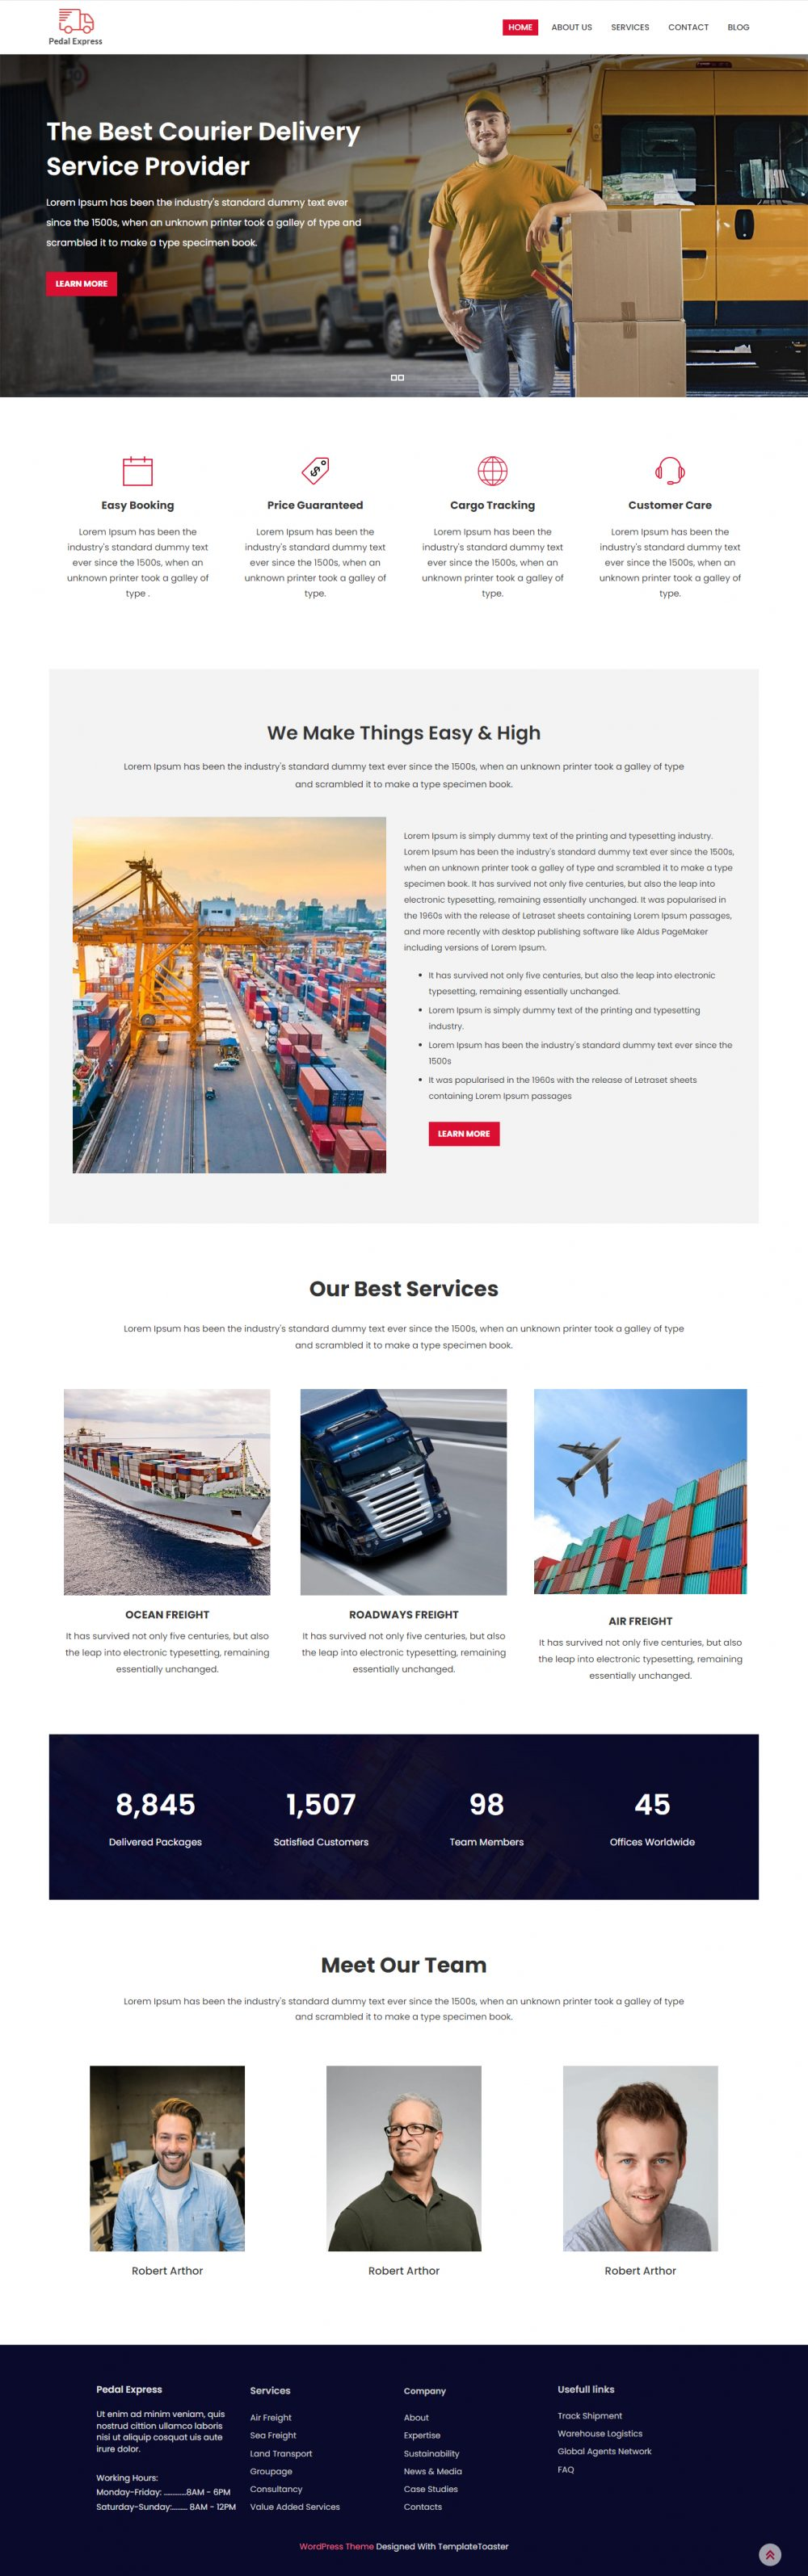 Pedal Express - Courier & Delivery Service Drupal Theme